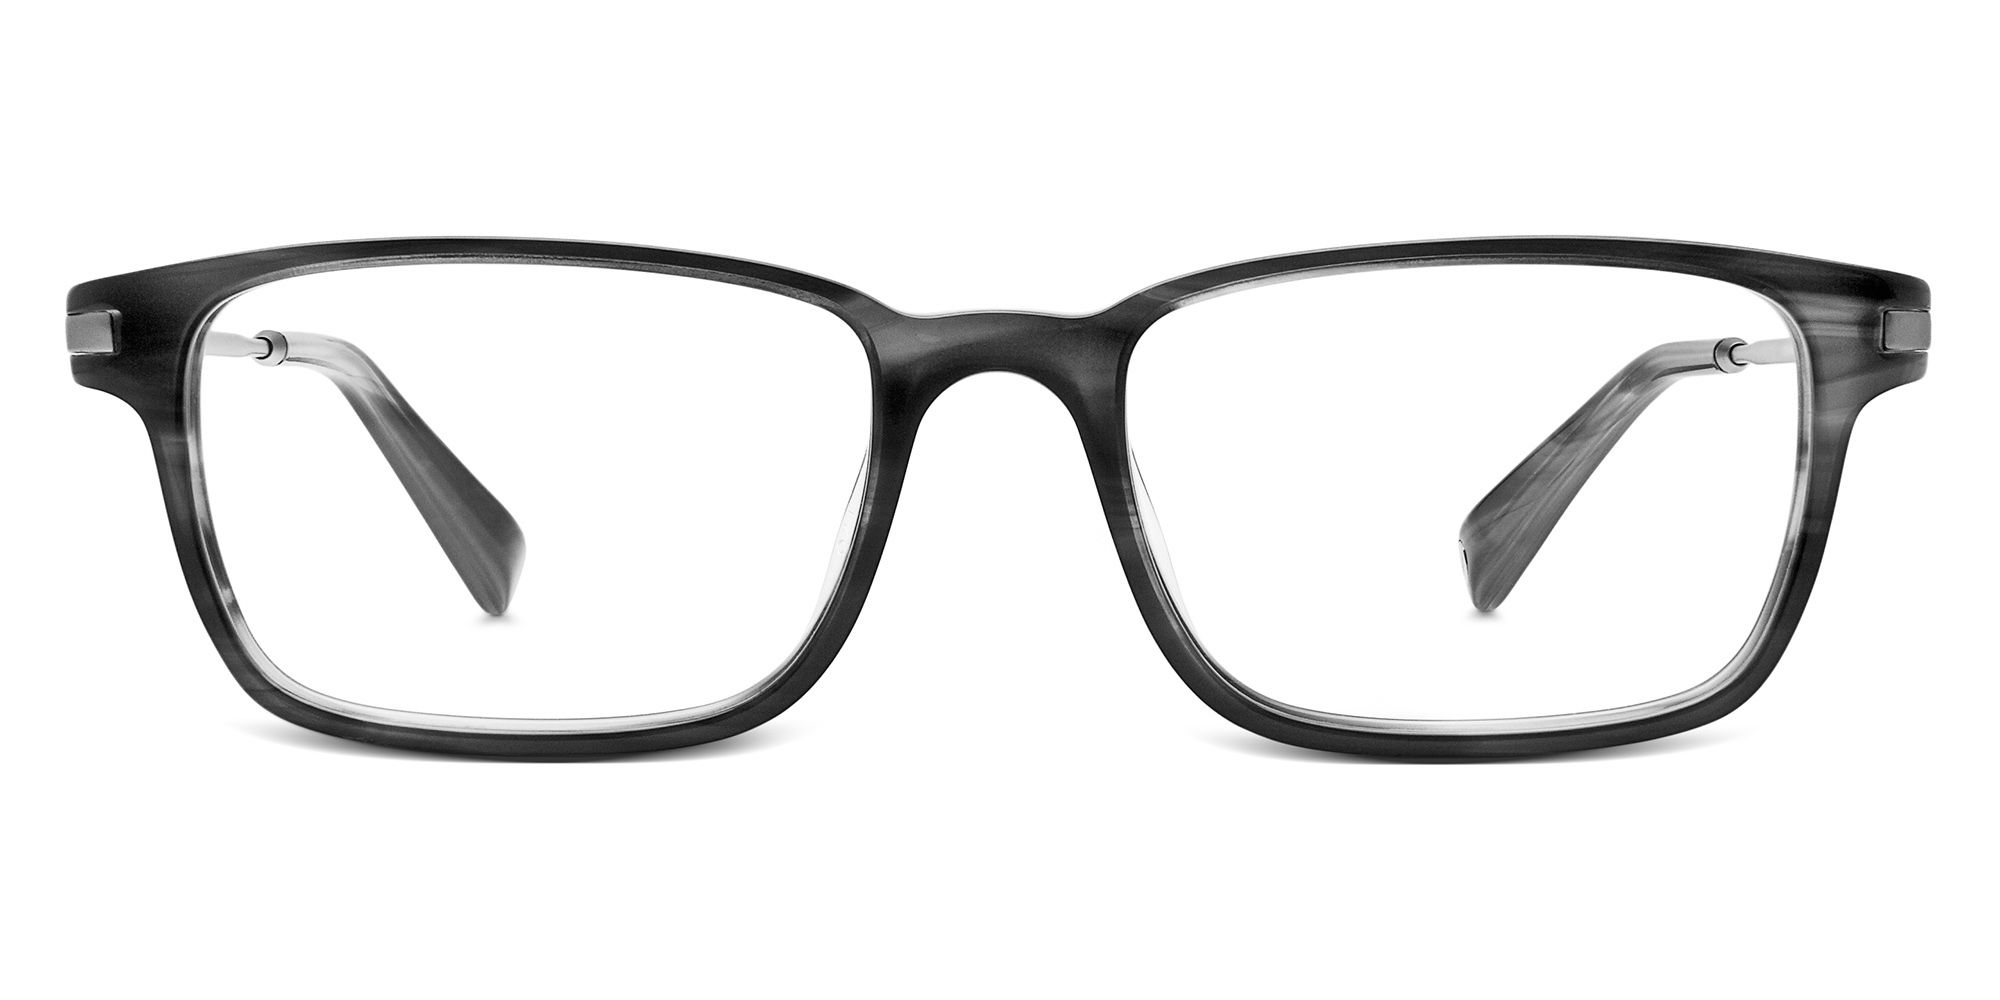 Warby Parker Crane Ti Eyeglasses in Newsprint Grey for Men